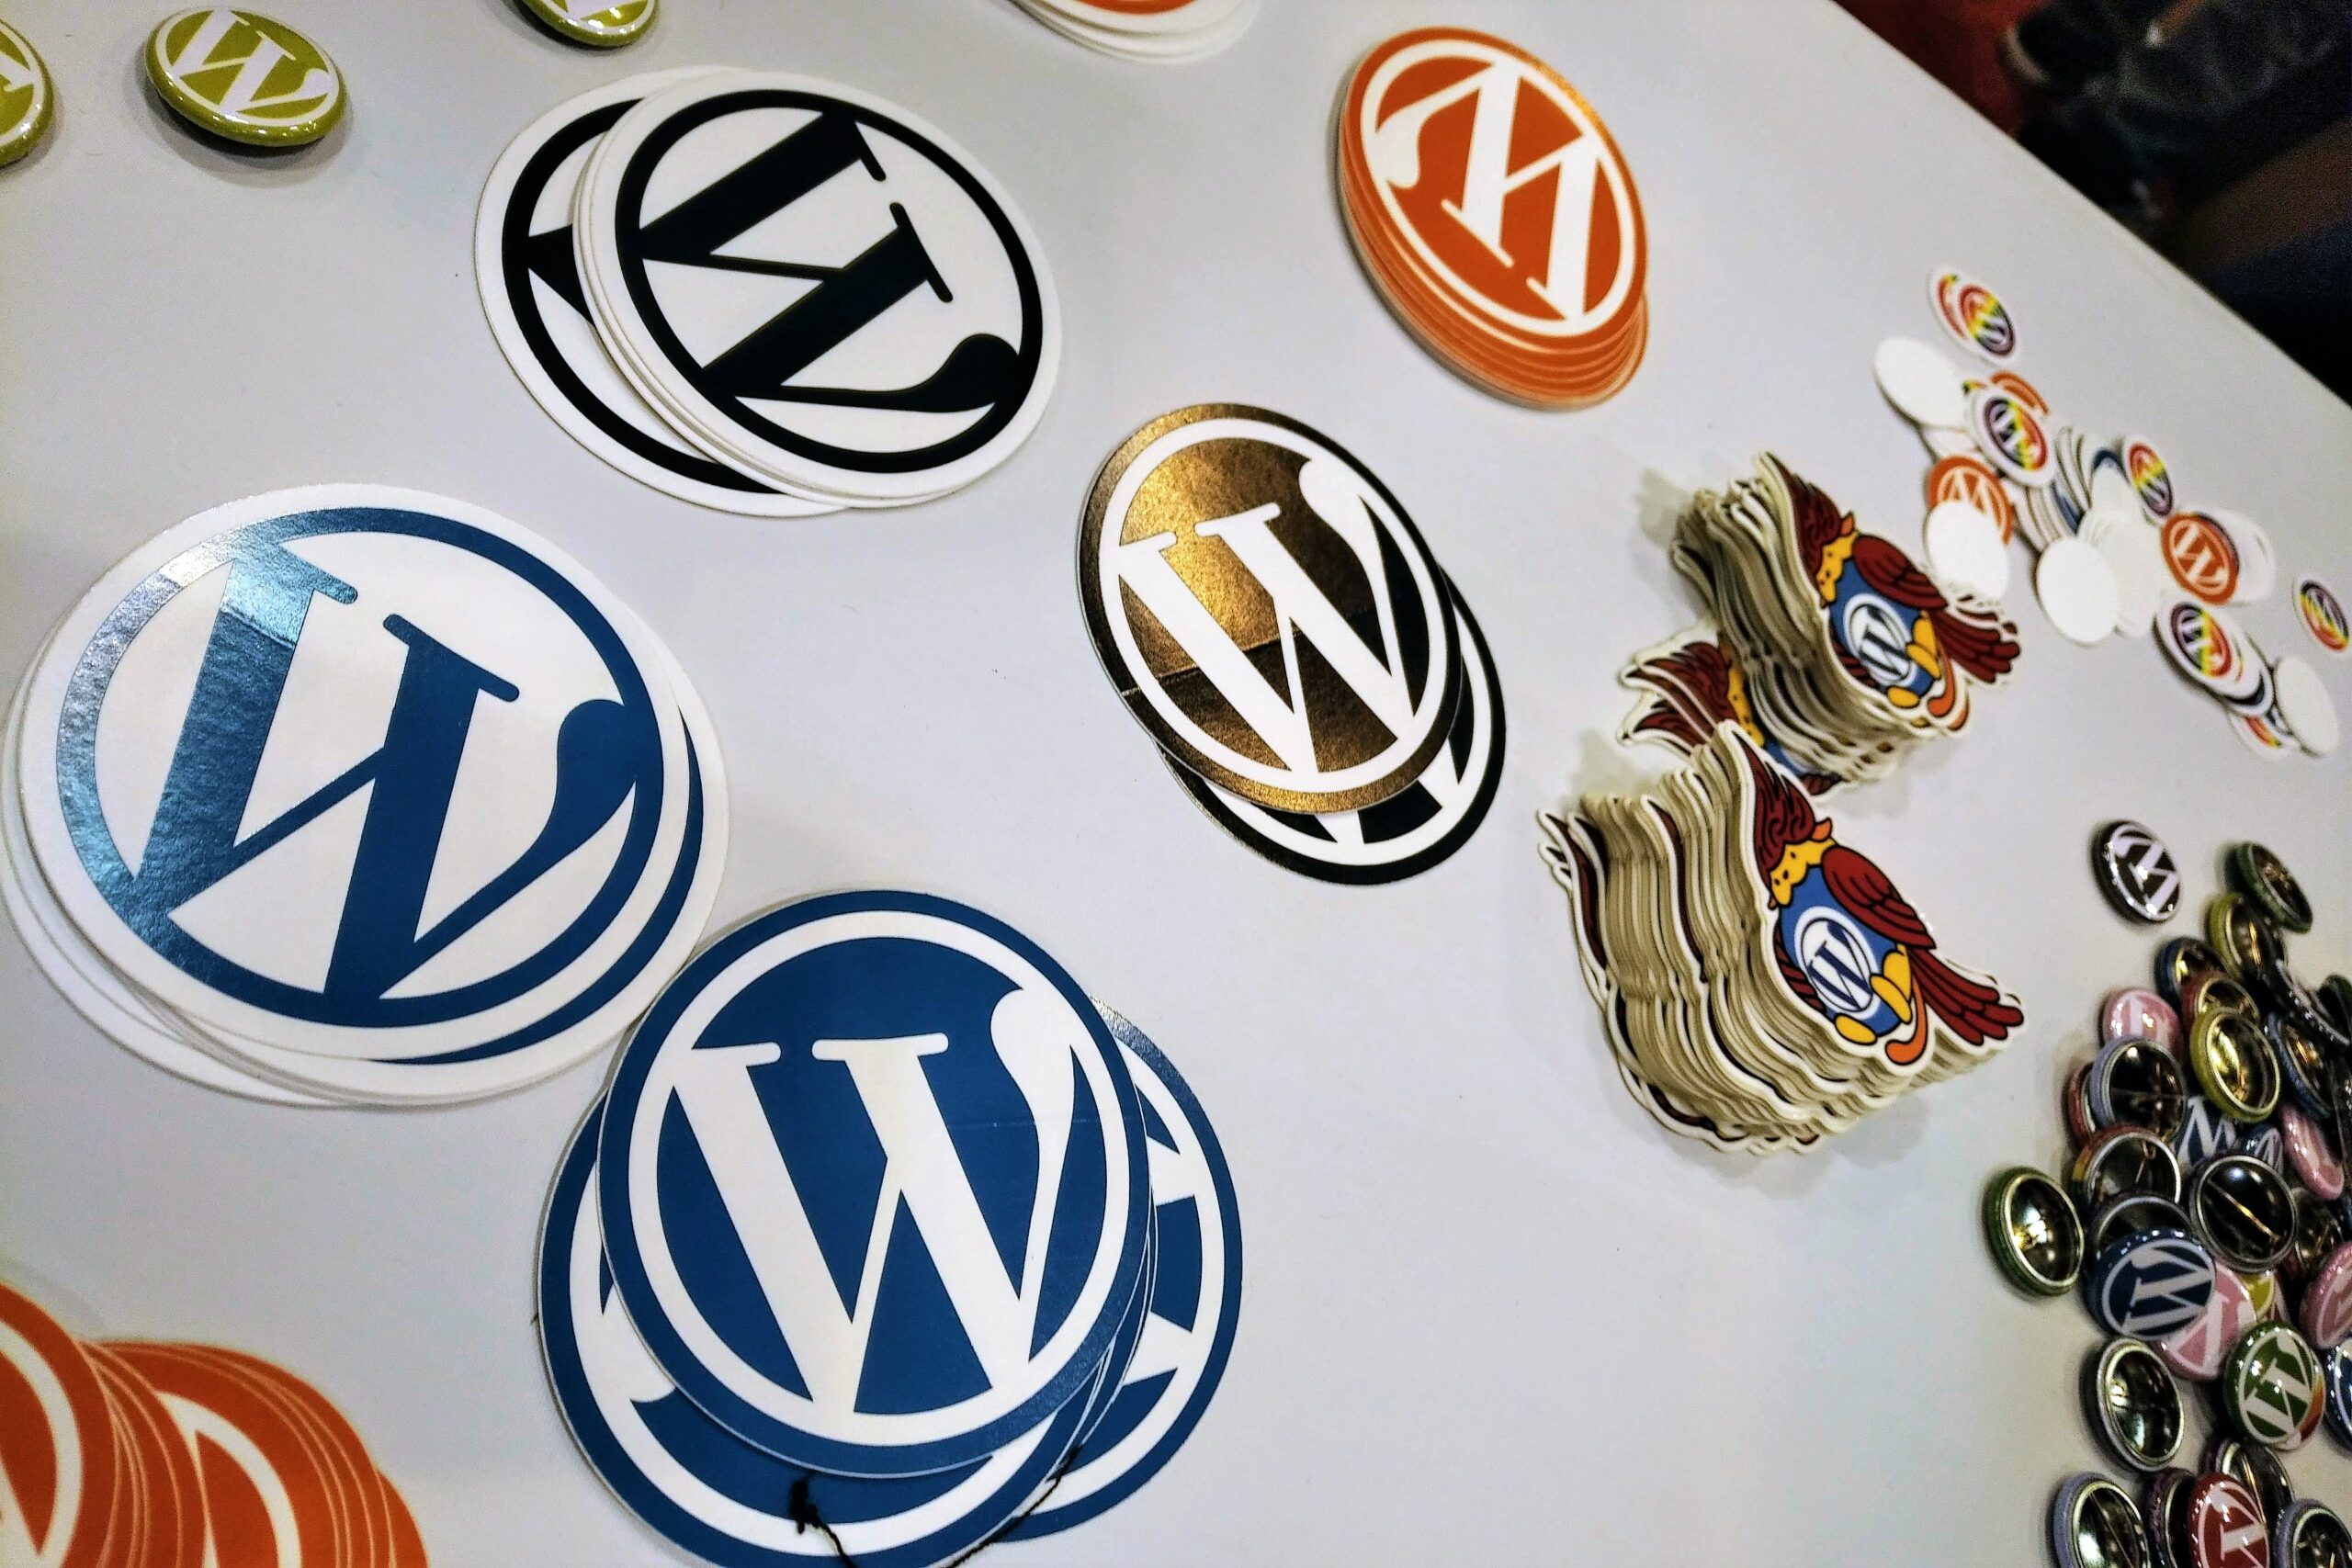 A table of WordPress stickers from WordCamp US 2019 in St. Louis